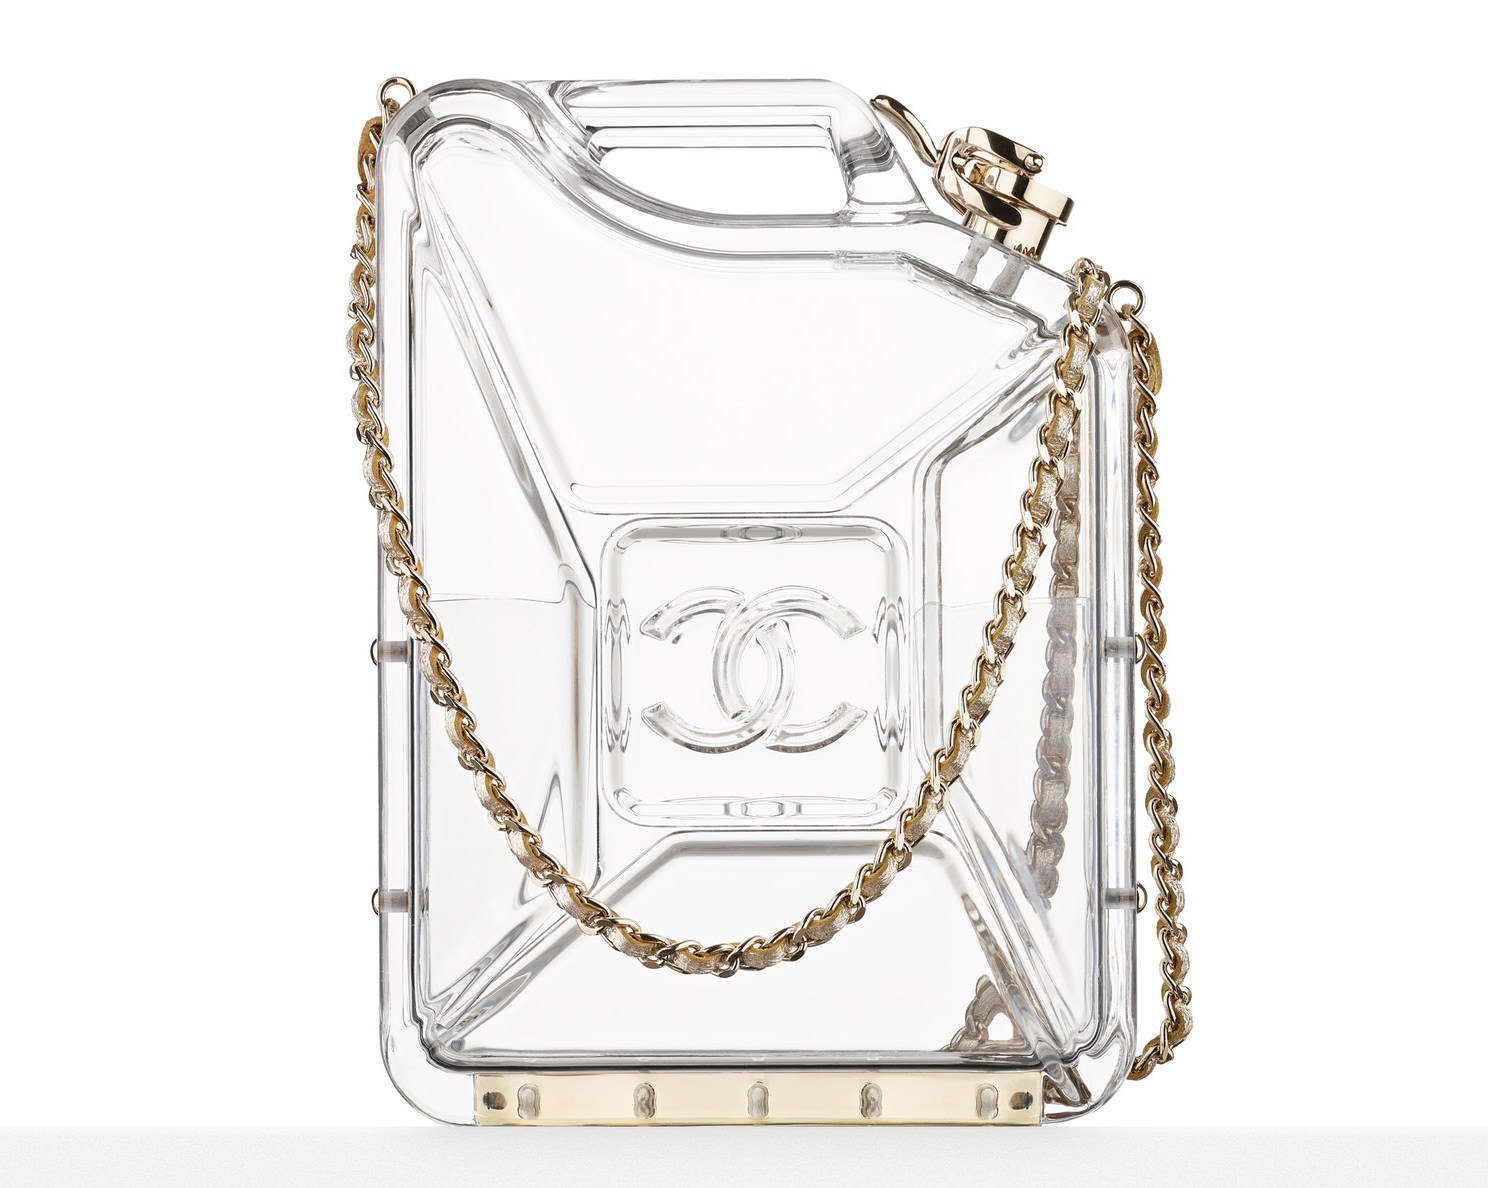 af7d7fd6d A Short History of Chanel's Wild, Wonderful, Extremely Expensive ...